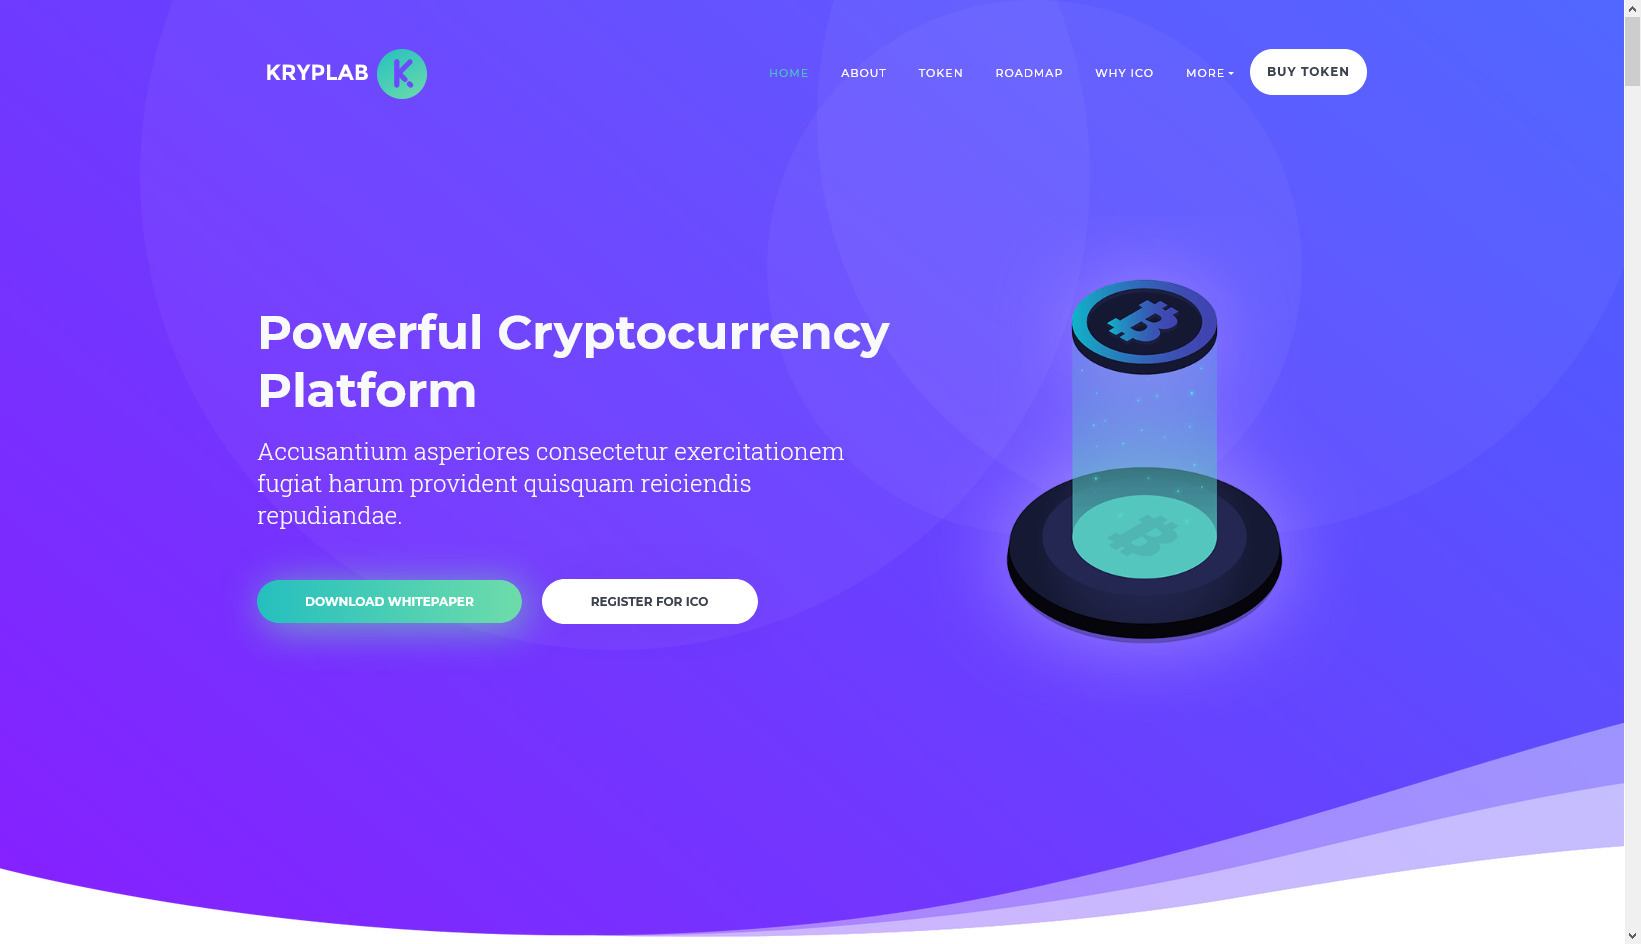 Kryplab, Bitcoin & Cryptocurrency Landing Page